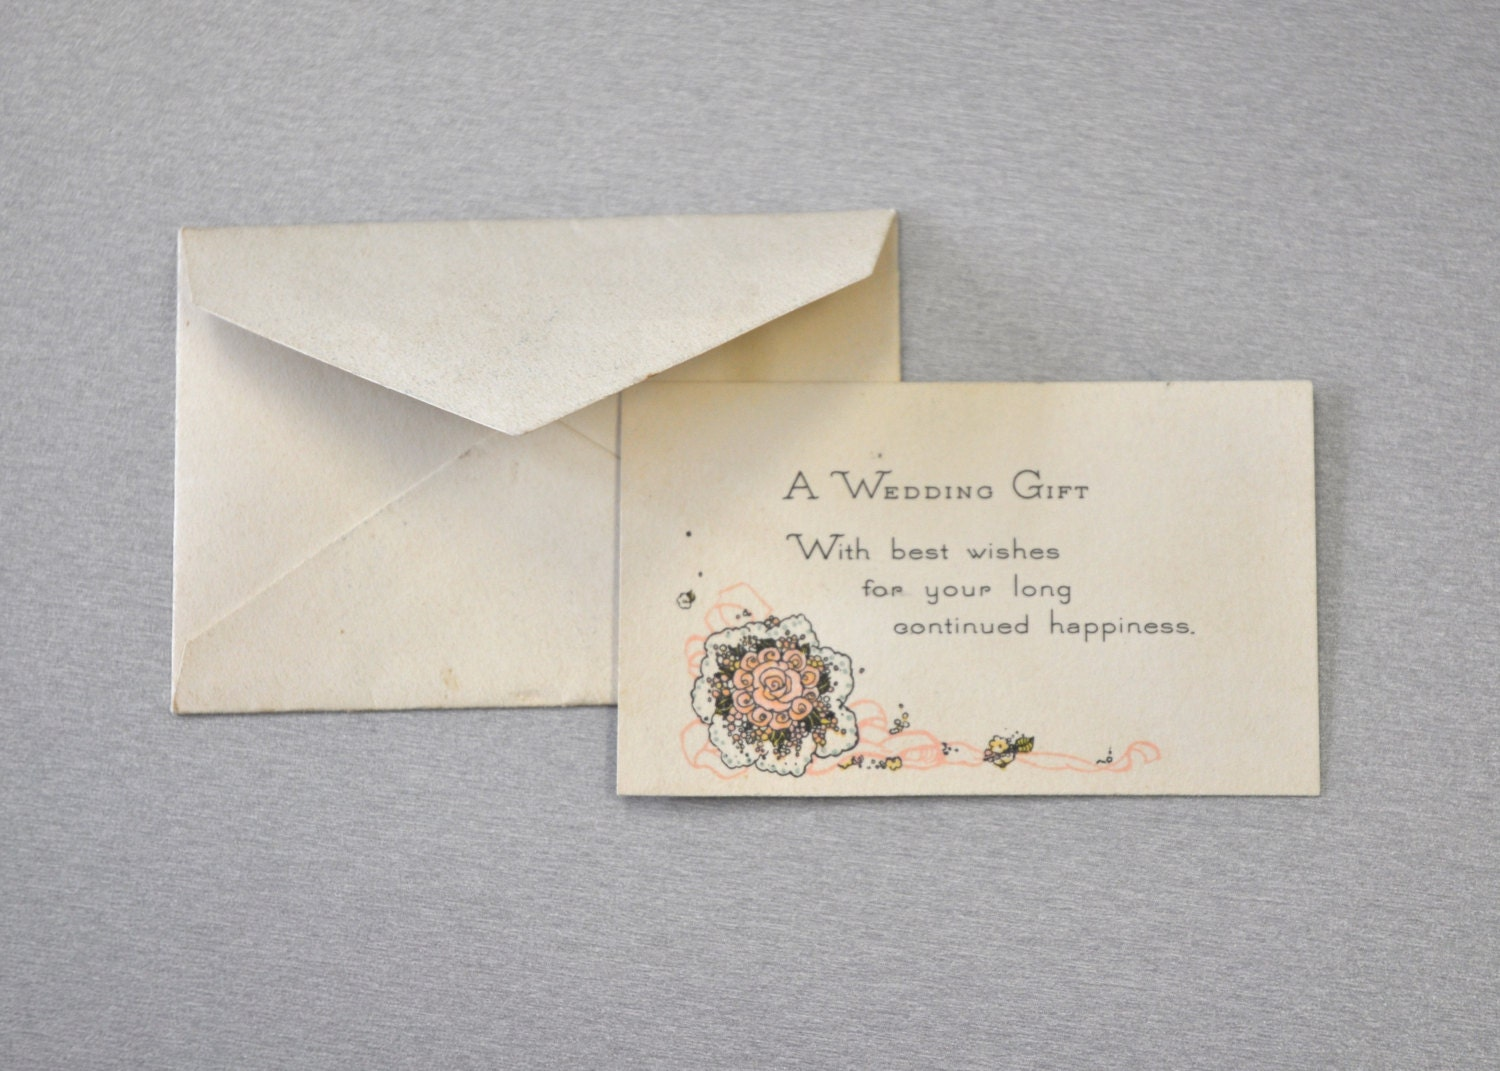 Tiny Vintage Wedding Gift Card with Envelope by DoYouMissMeNow